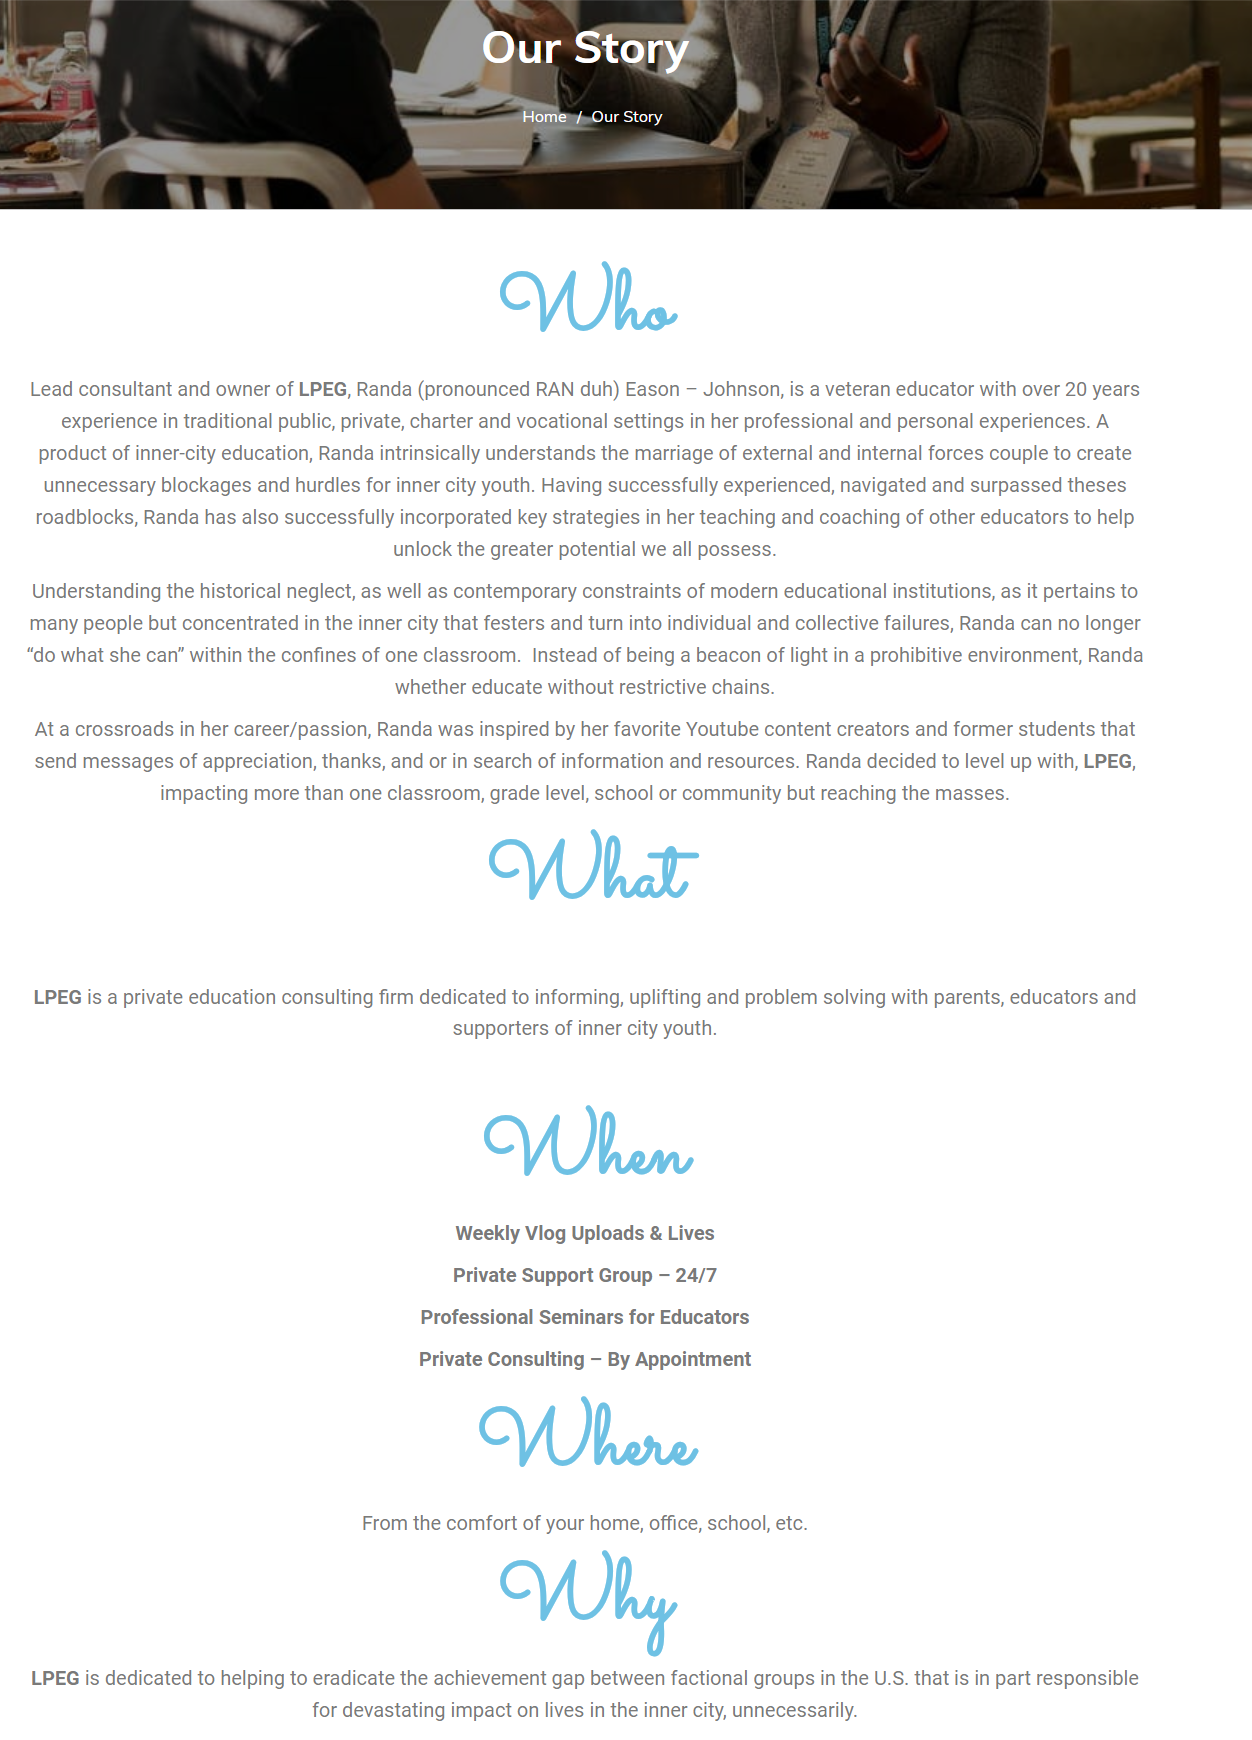 Little Pearls Education Group Introduction Page